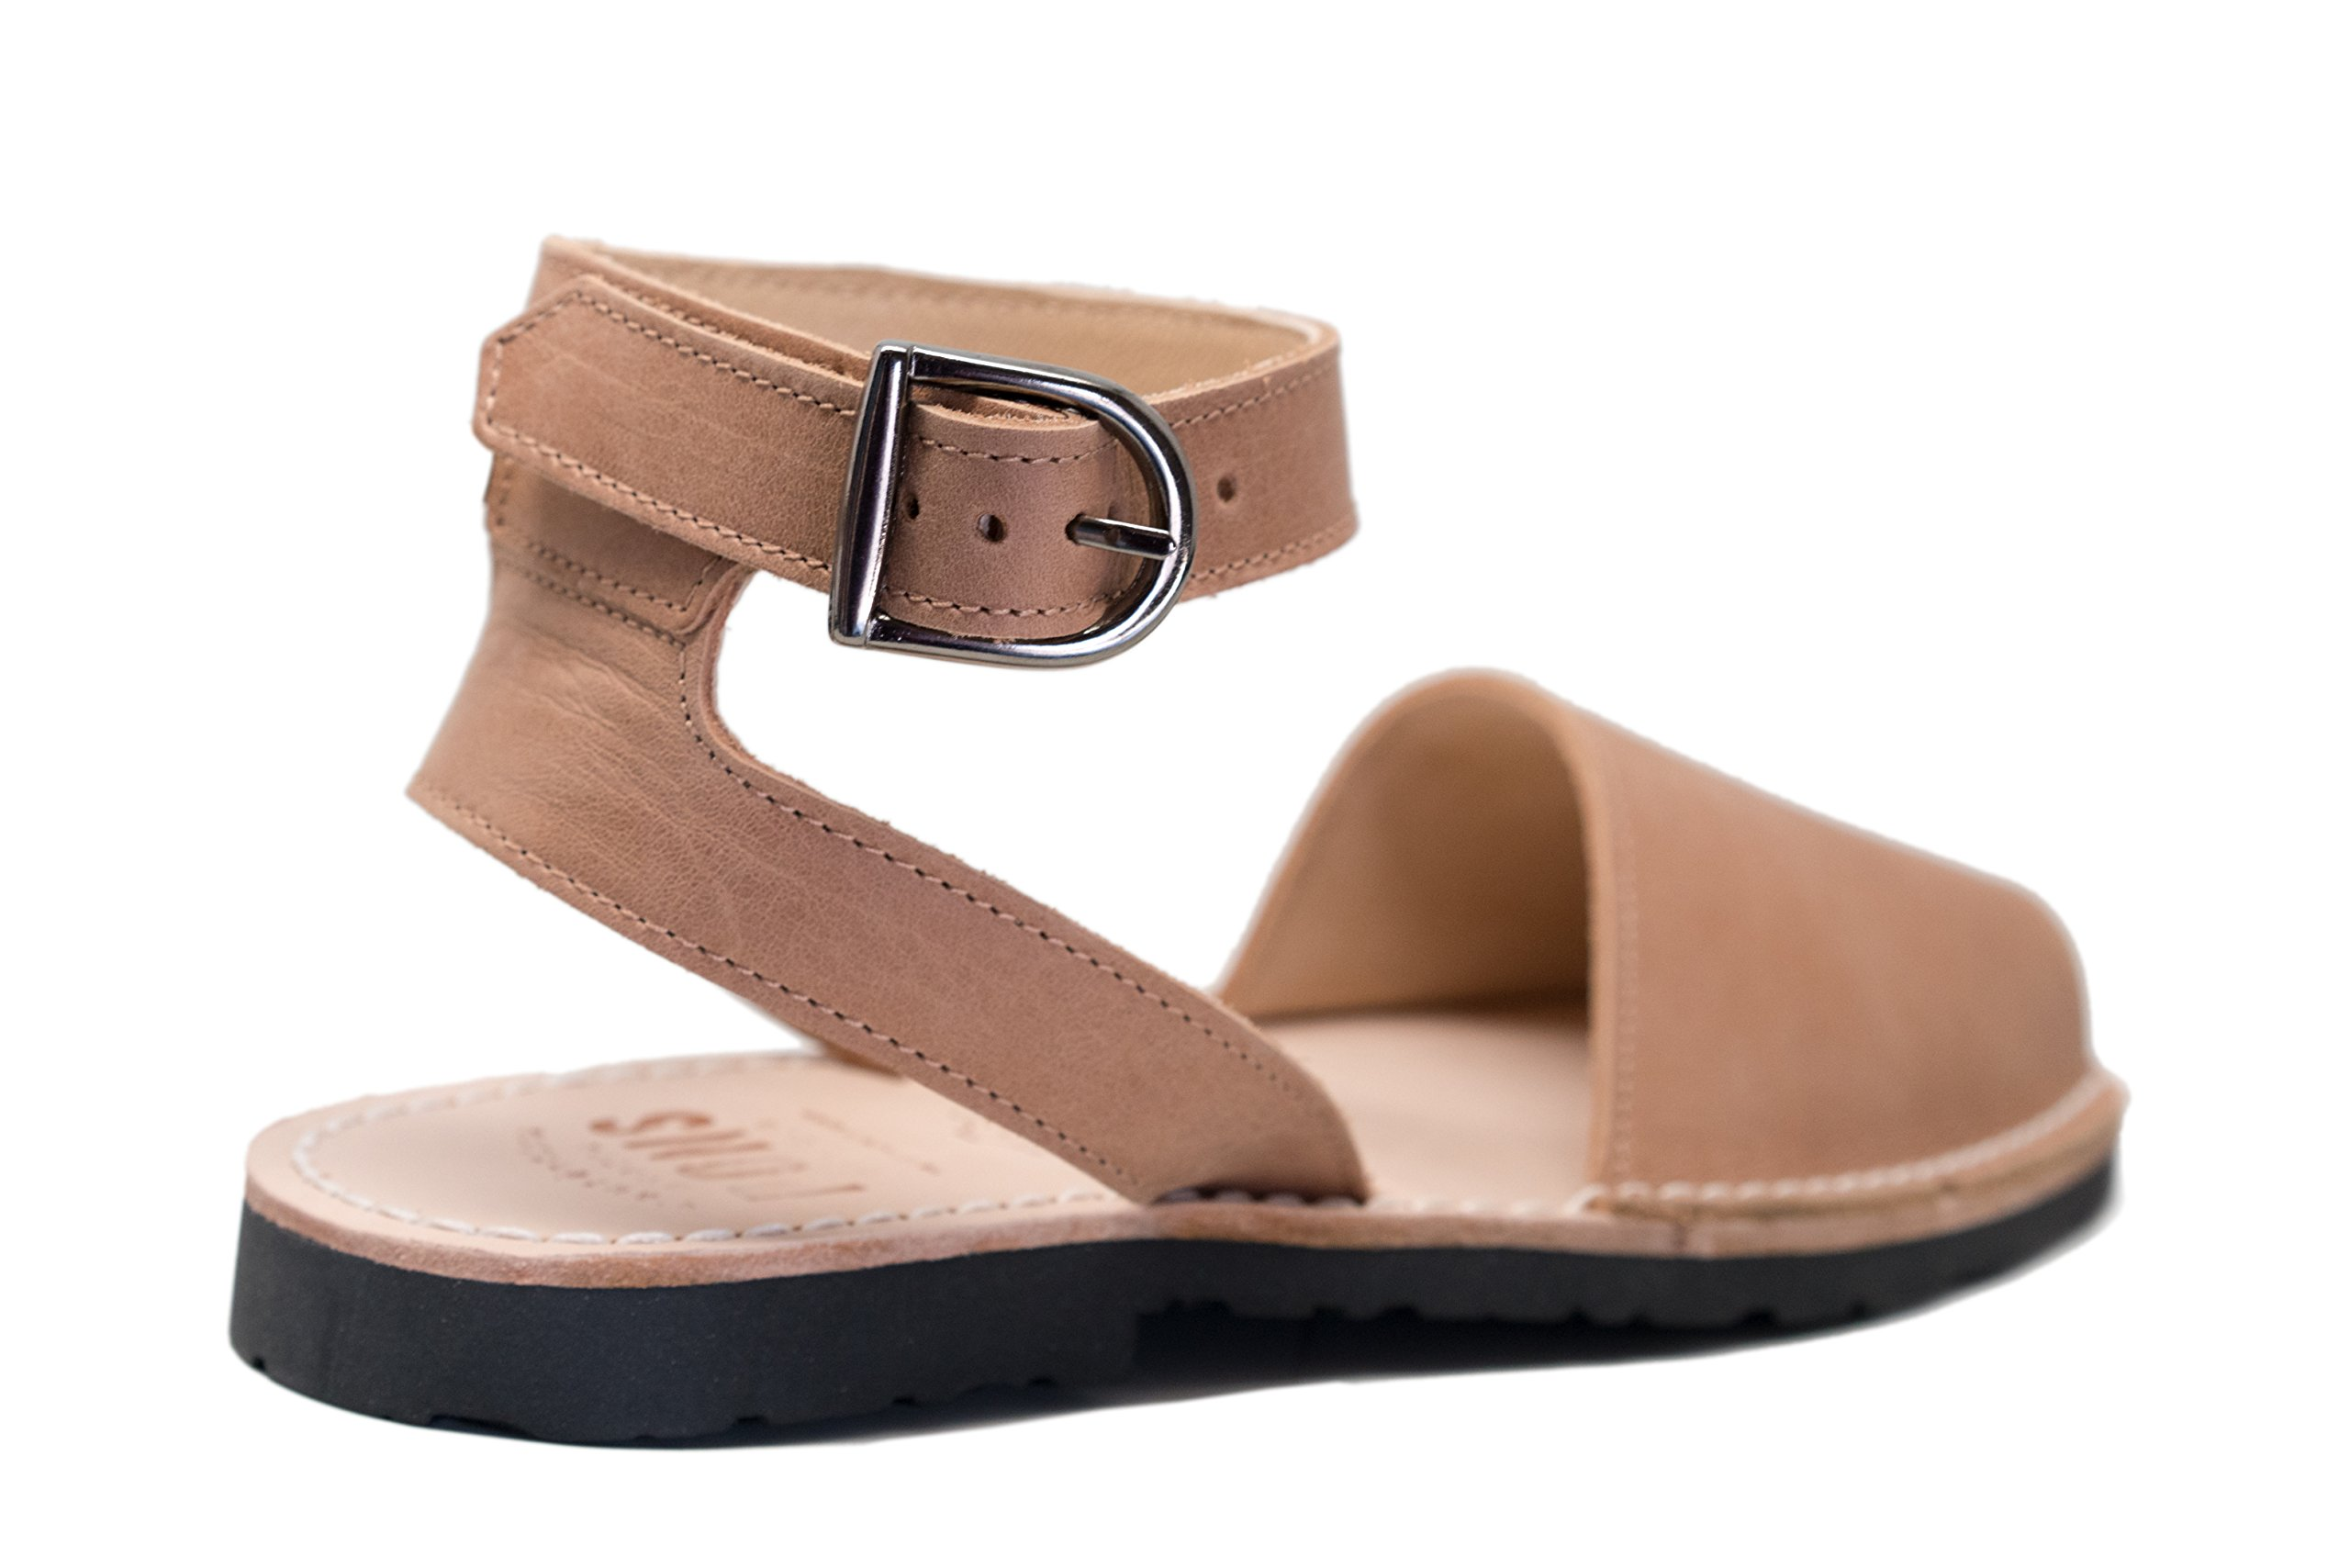 Pons 521 - Avarca Classic Style Strap - Tan - 39 (US 9)